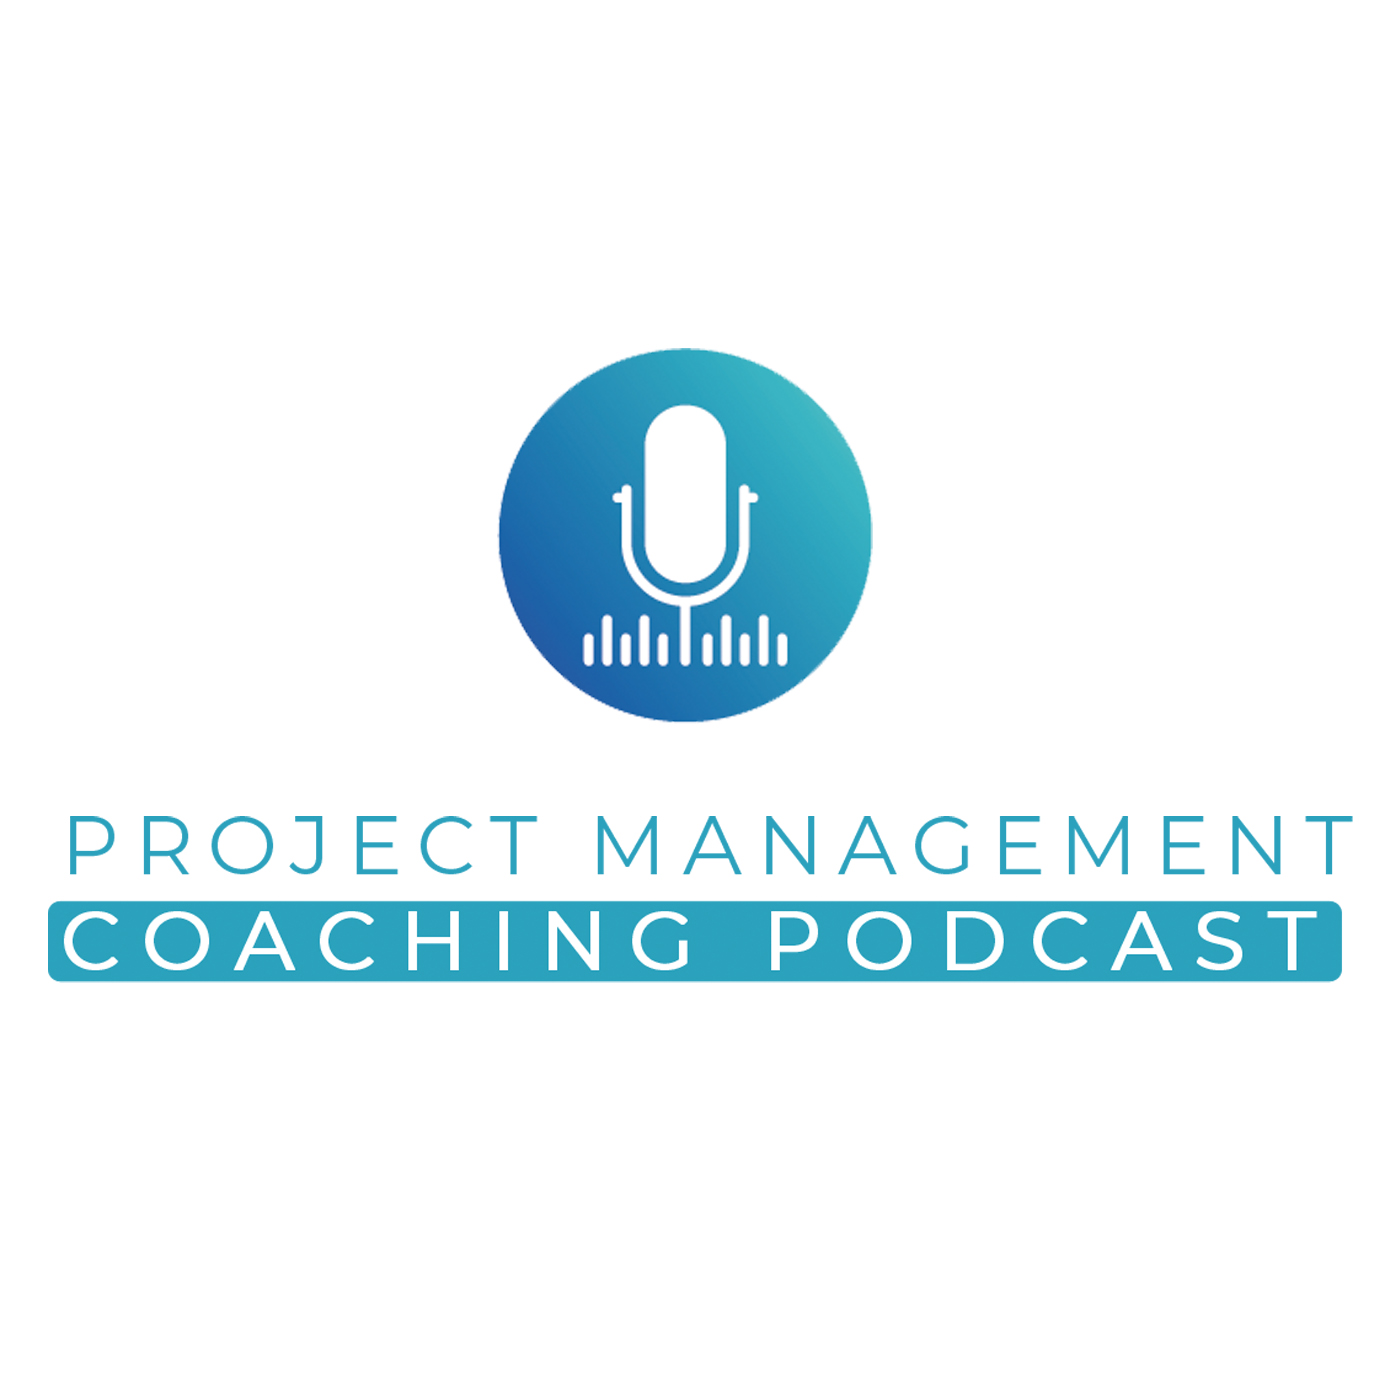 Project Management Coaching Podcast